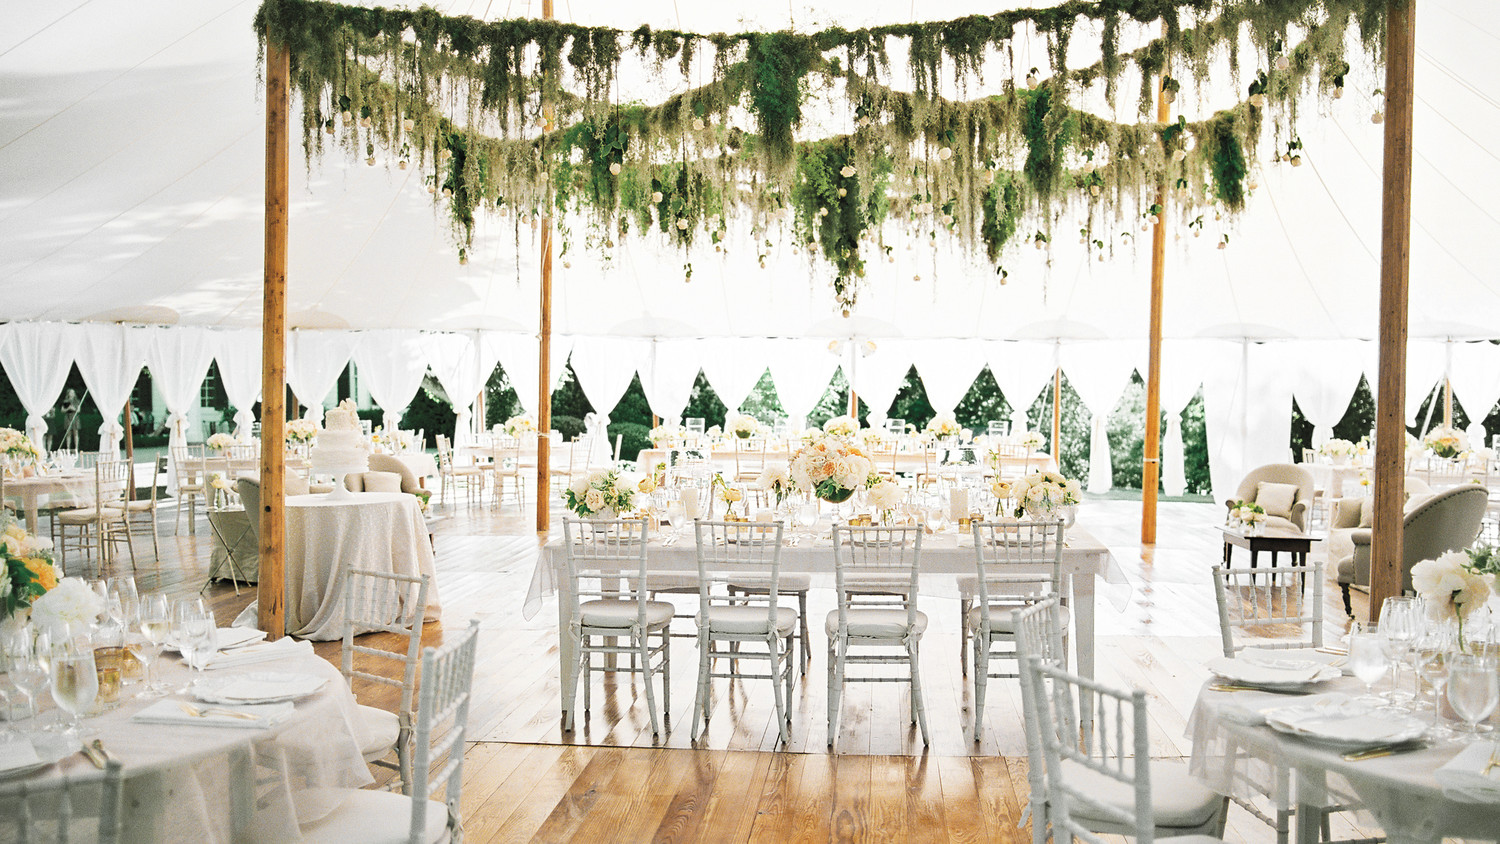 Head Table Wedding Decor With Garlands